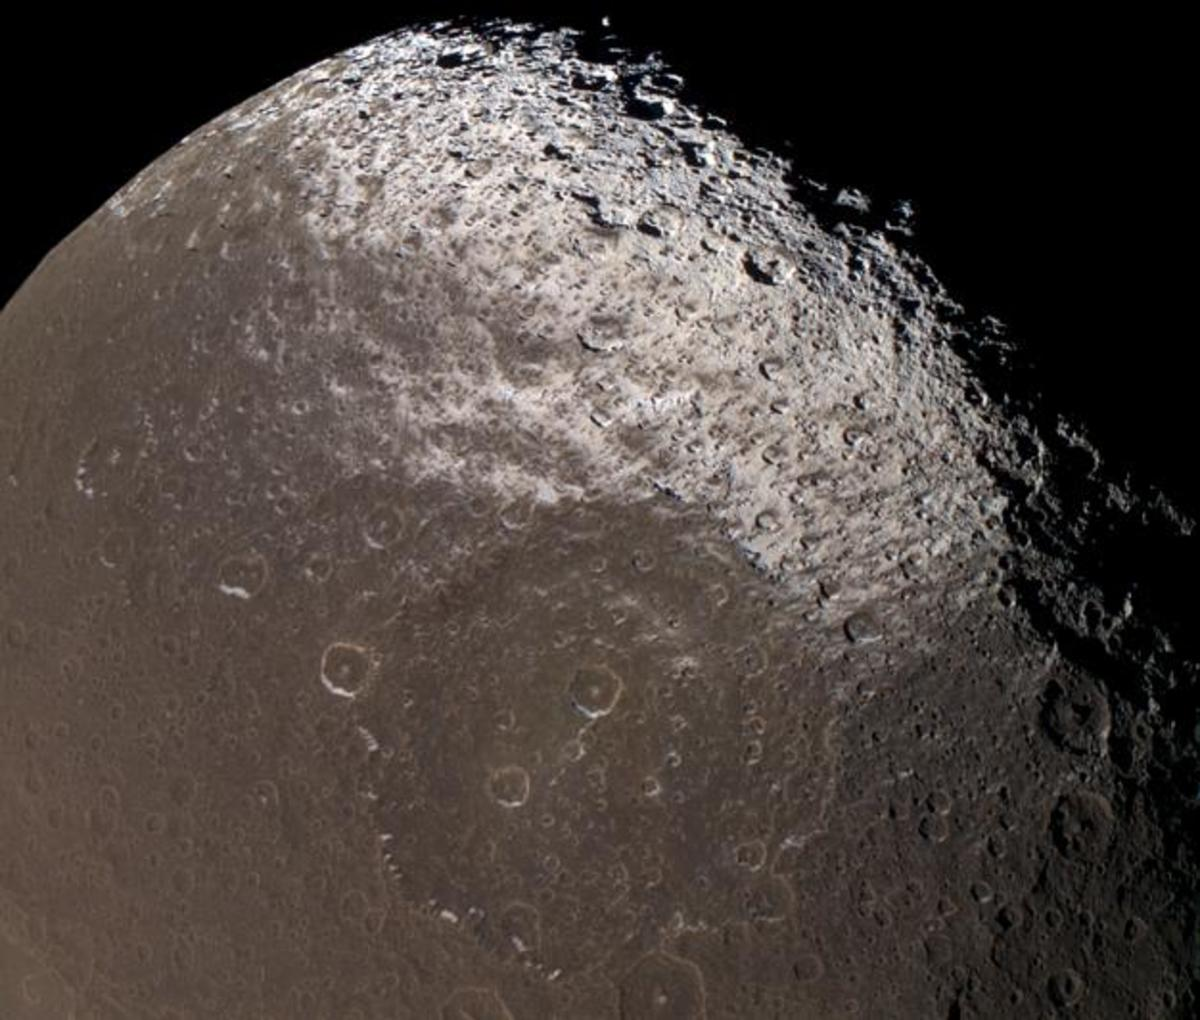 Saturn's moon Iapetus is a puzzle: its backside is light-colored, and its leading hemisphere is mostly coated with a muddy brown...something...that appears to have splattered it from another moon, the rings, or an unknown source.